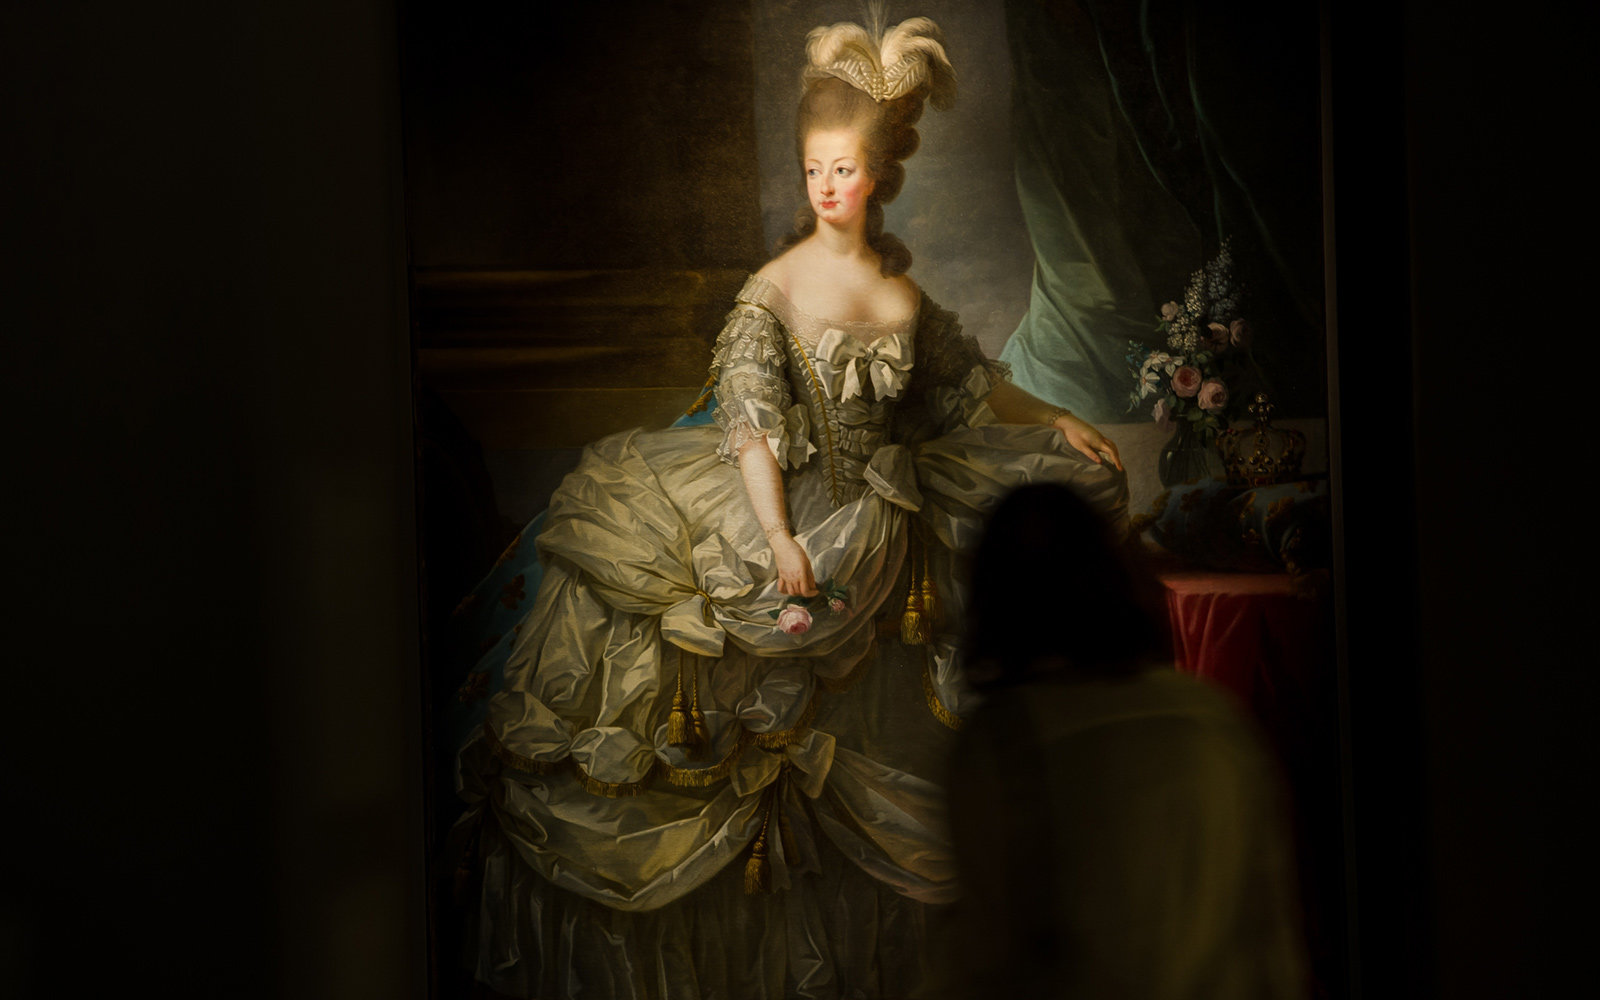 Vigée Le Brun: Woman Artist of the French Revolution